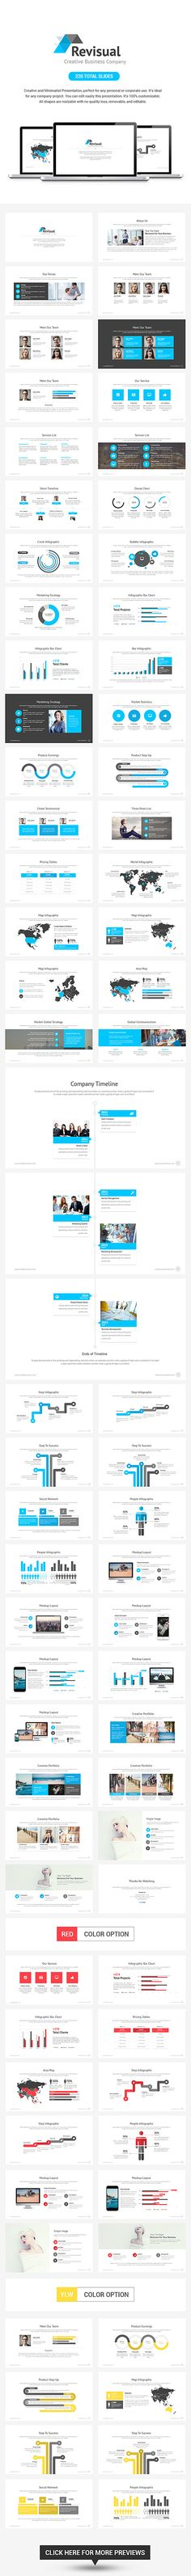 Reverb - Business Presentation Business presentation, Business - business presentation template